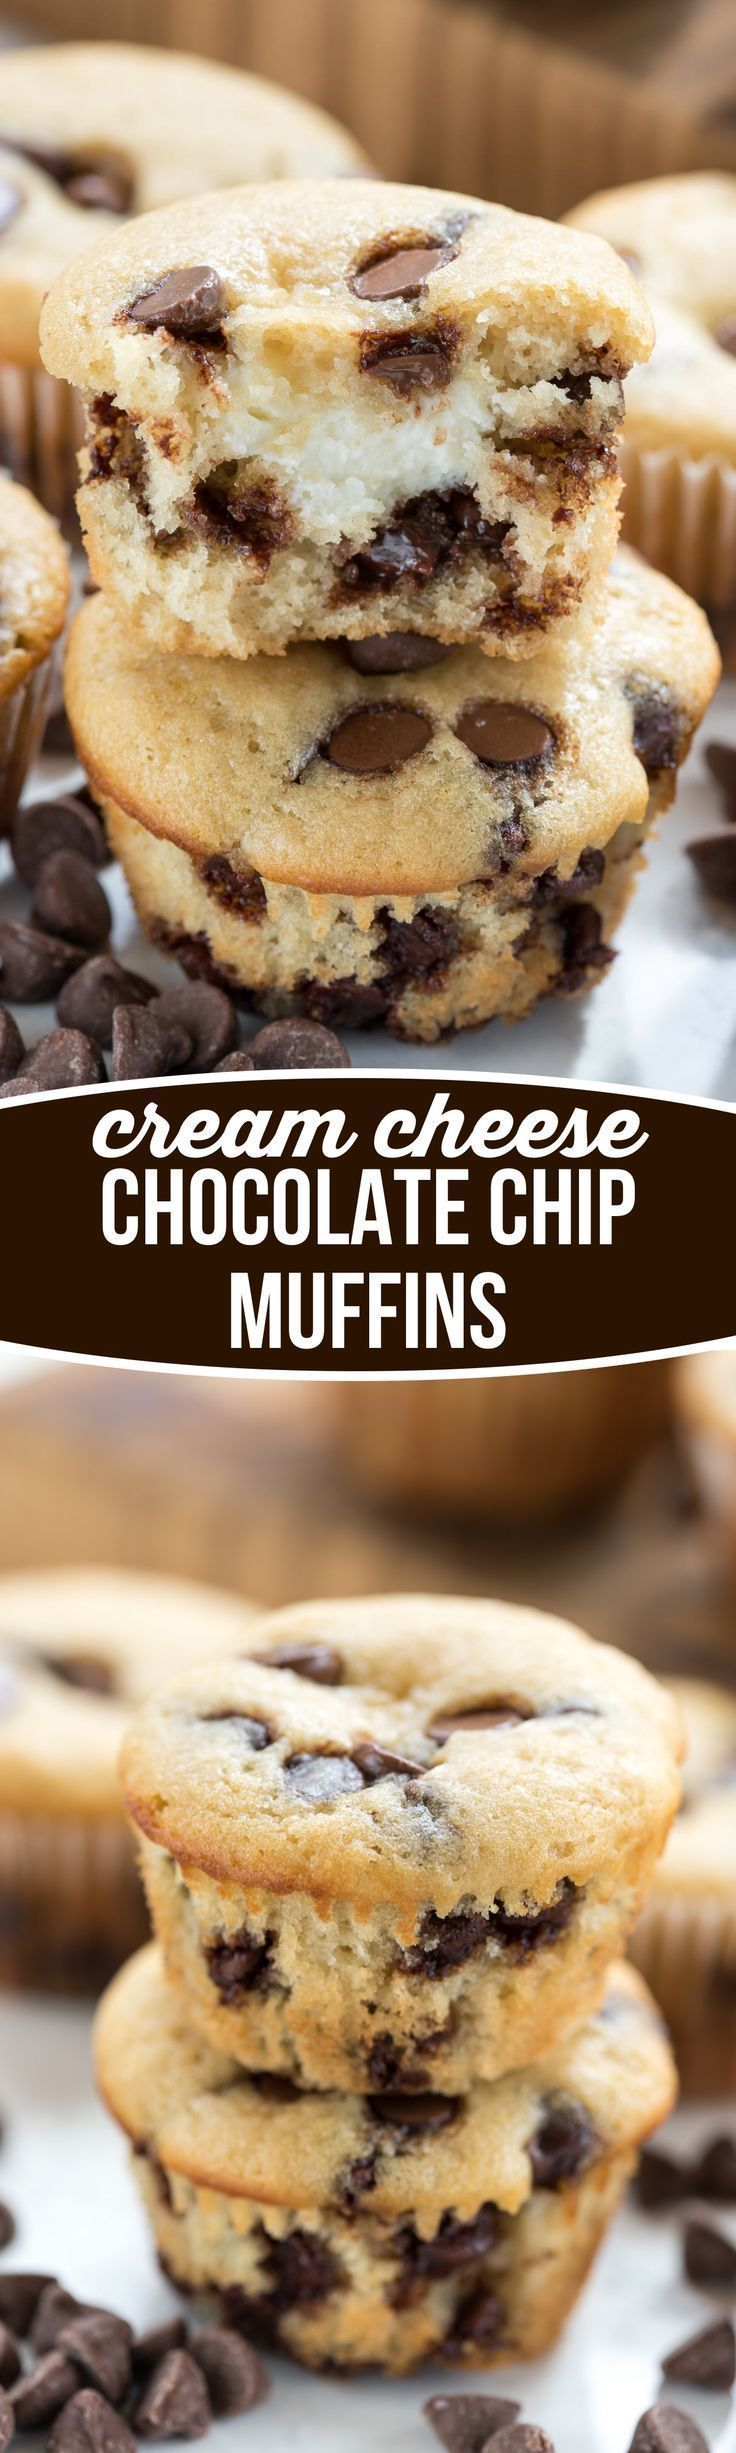 Cream Cheese filled Chocolate Chip Muffins - This easy muffin recipe is filled with chocolate chips and a sweet cream cheese surprise inside!